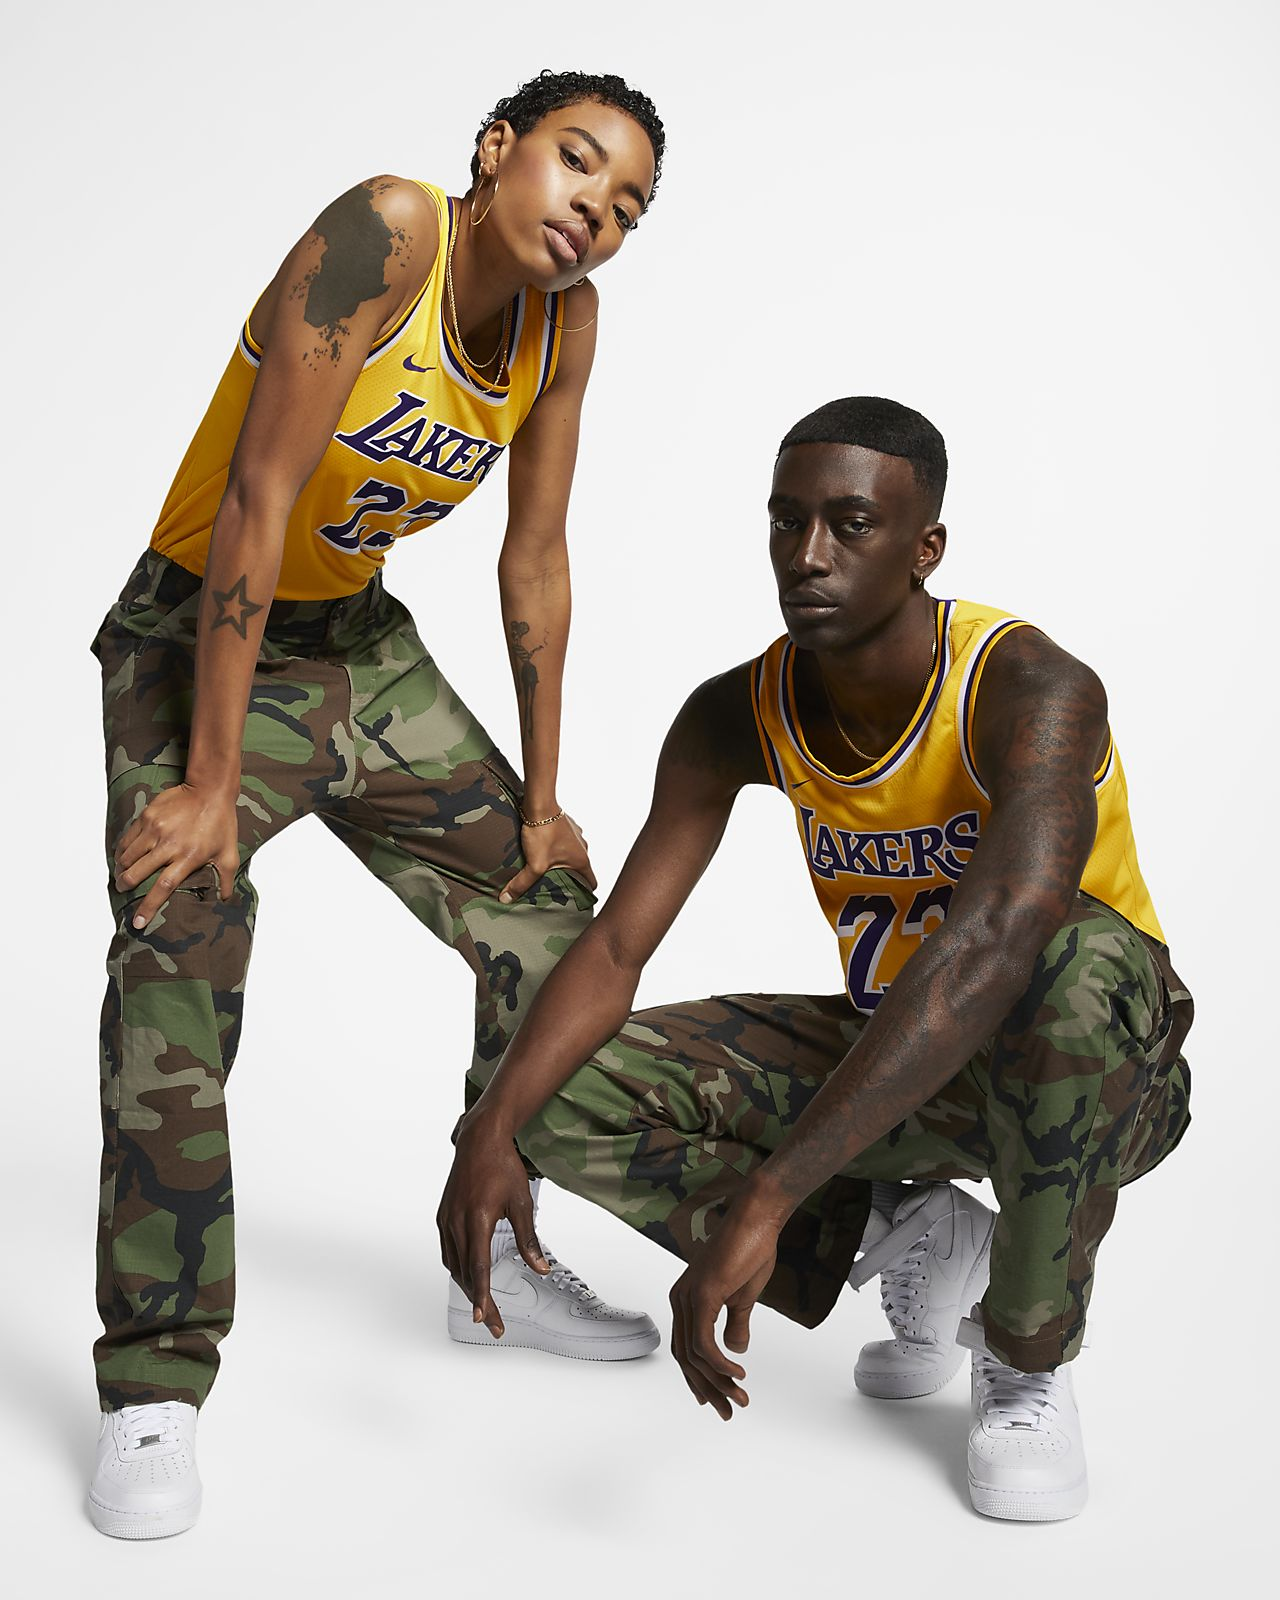 0fc7d334ebed5 ... Camiseta Nike NBA Connected para hombre LeBron James Icon Edition  Swingman (Los Angeles Lakers)